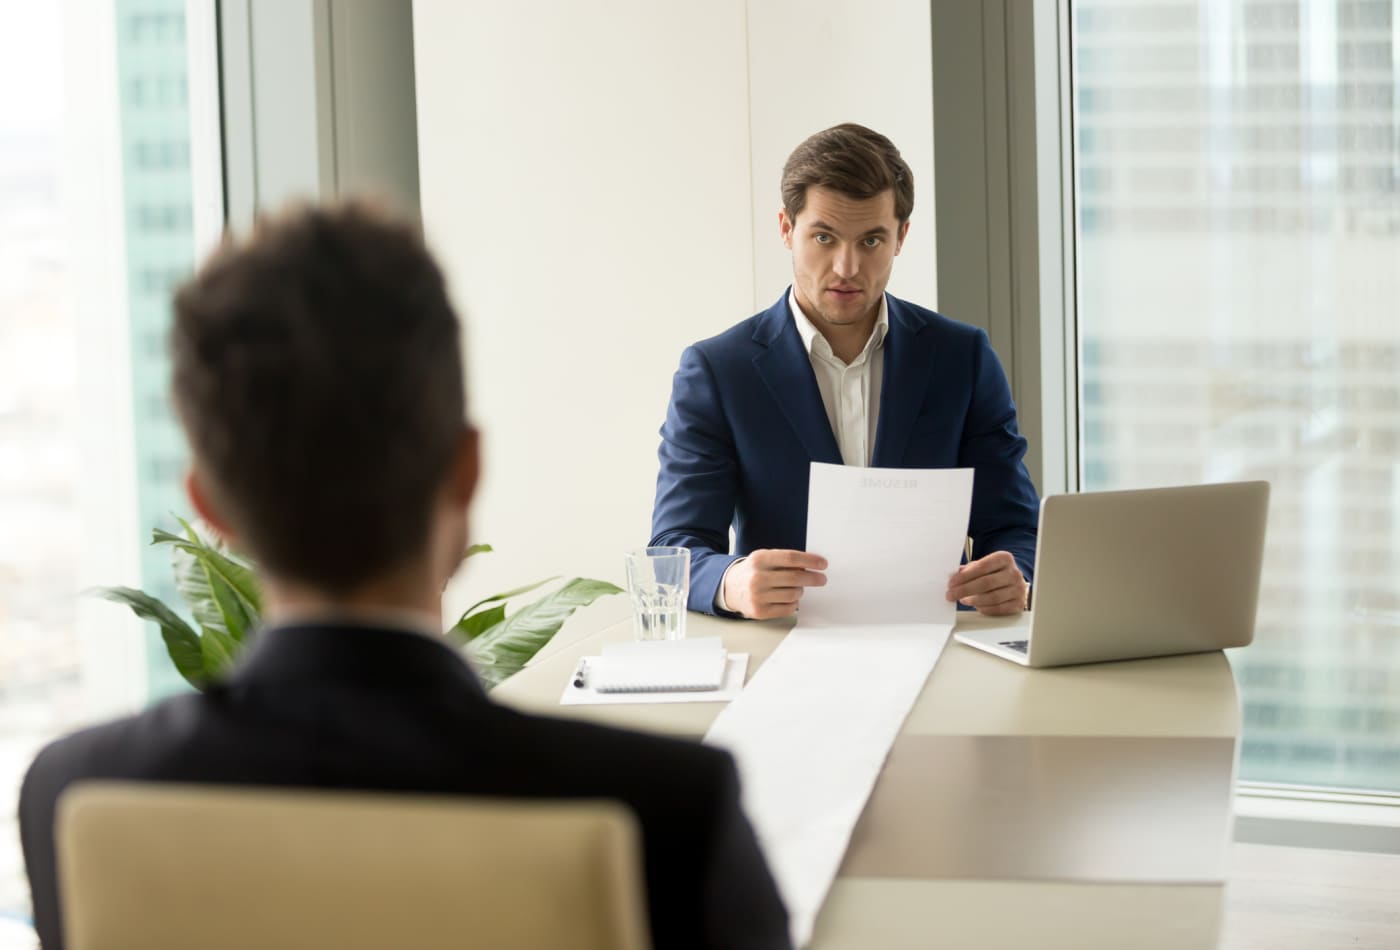 Want to write the perfect resume? Stop making it all about yourself